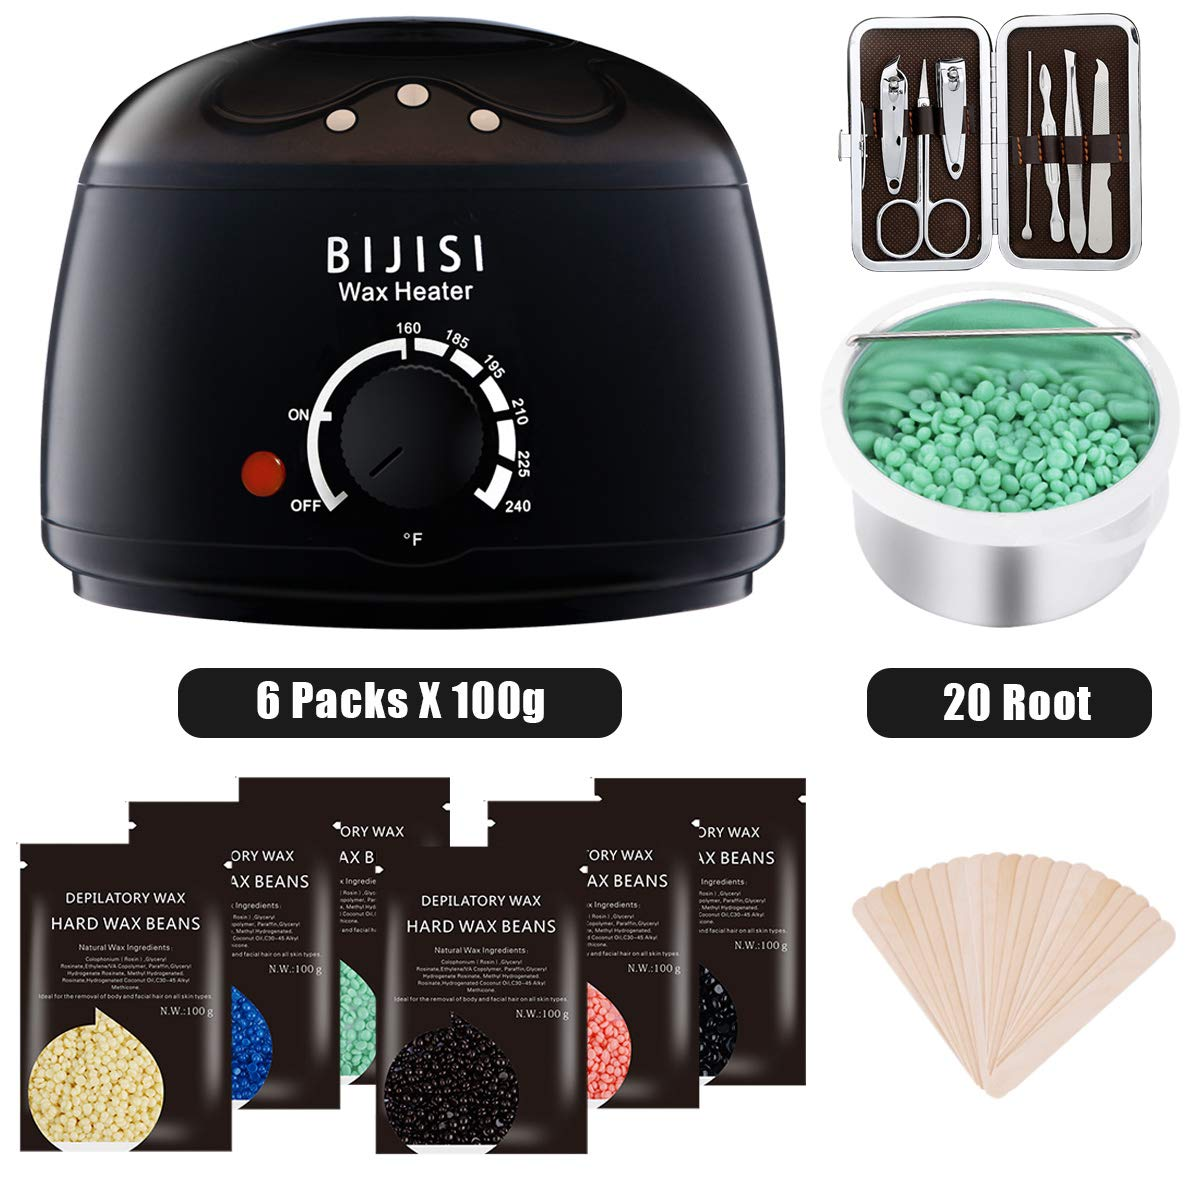 Wax Warmer, Bijisi Hair Removal Waxing Kit with 6 Hard Wax Beans and 20 Wax Applicator Sticks, DIY Depilatory Machine for Arm, Leg and Toe Wax Warmer, Bijisi Hair Removal Waxing Kit with 6 Hard Wax B